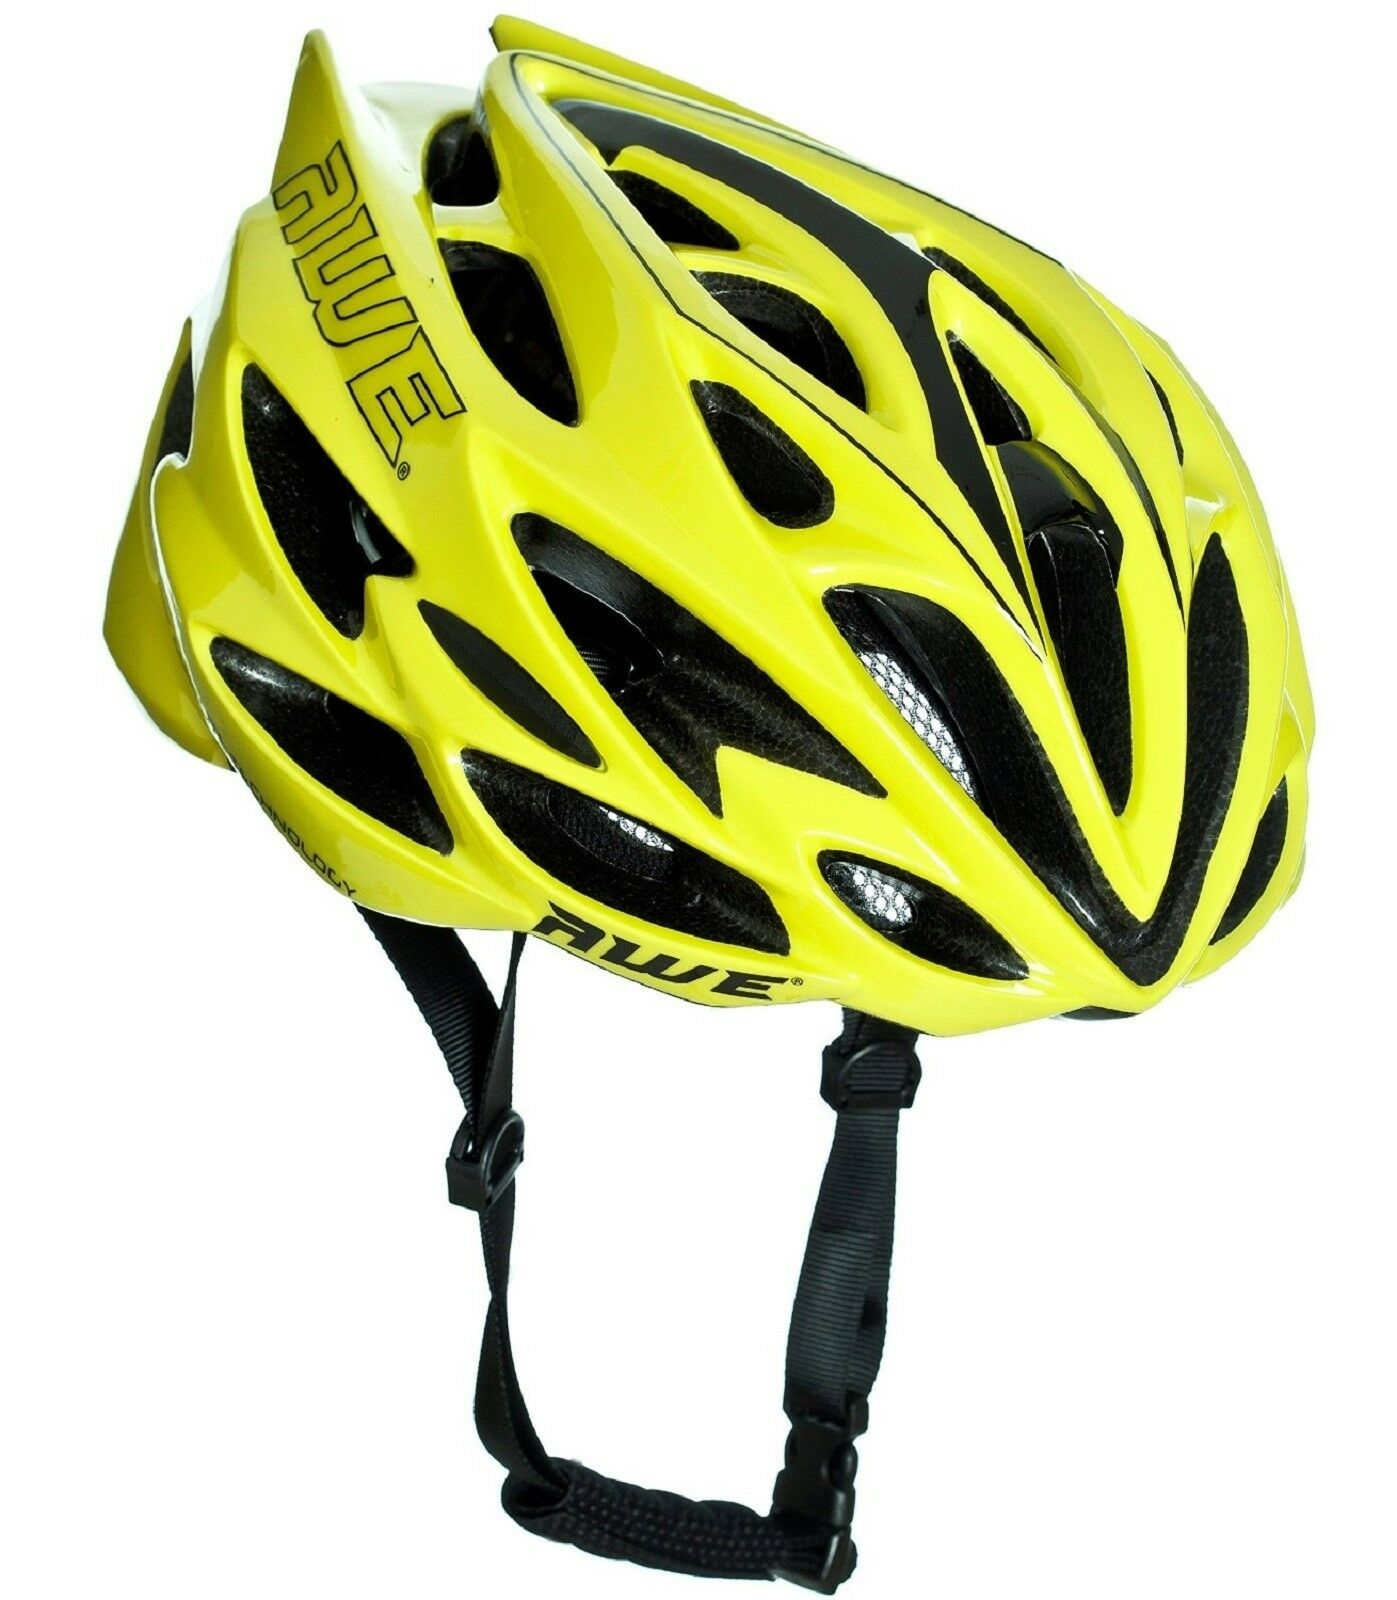 AWE AWESpeed™ InMould Adult Mens Road Cycling Helmet 56-58cm Neon Yellow